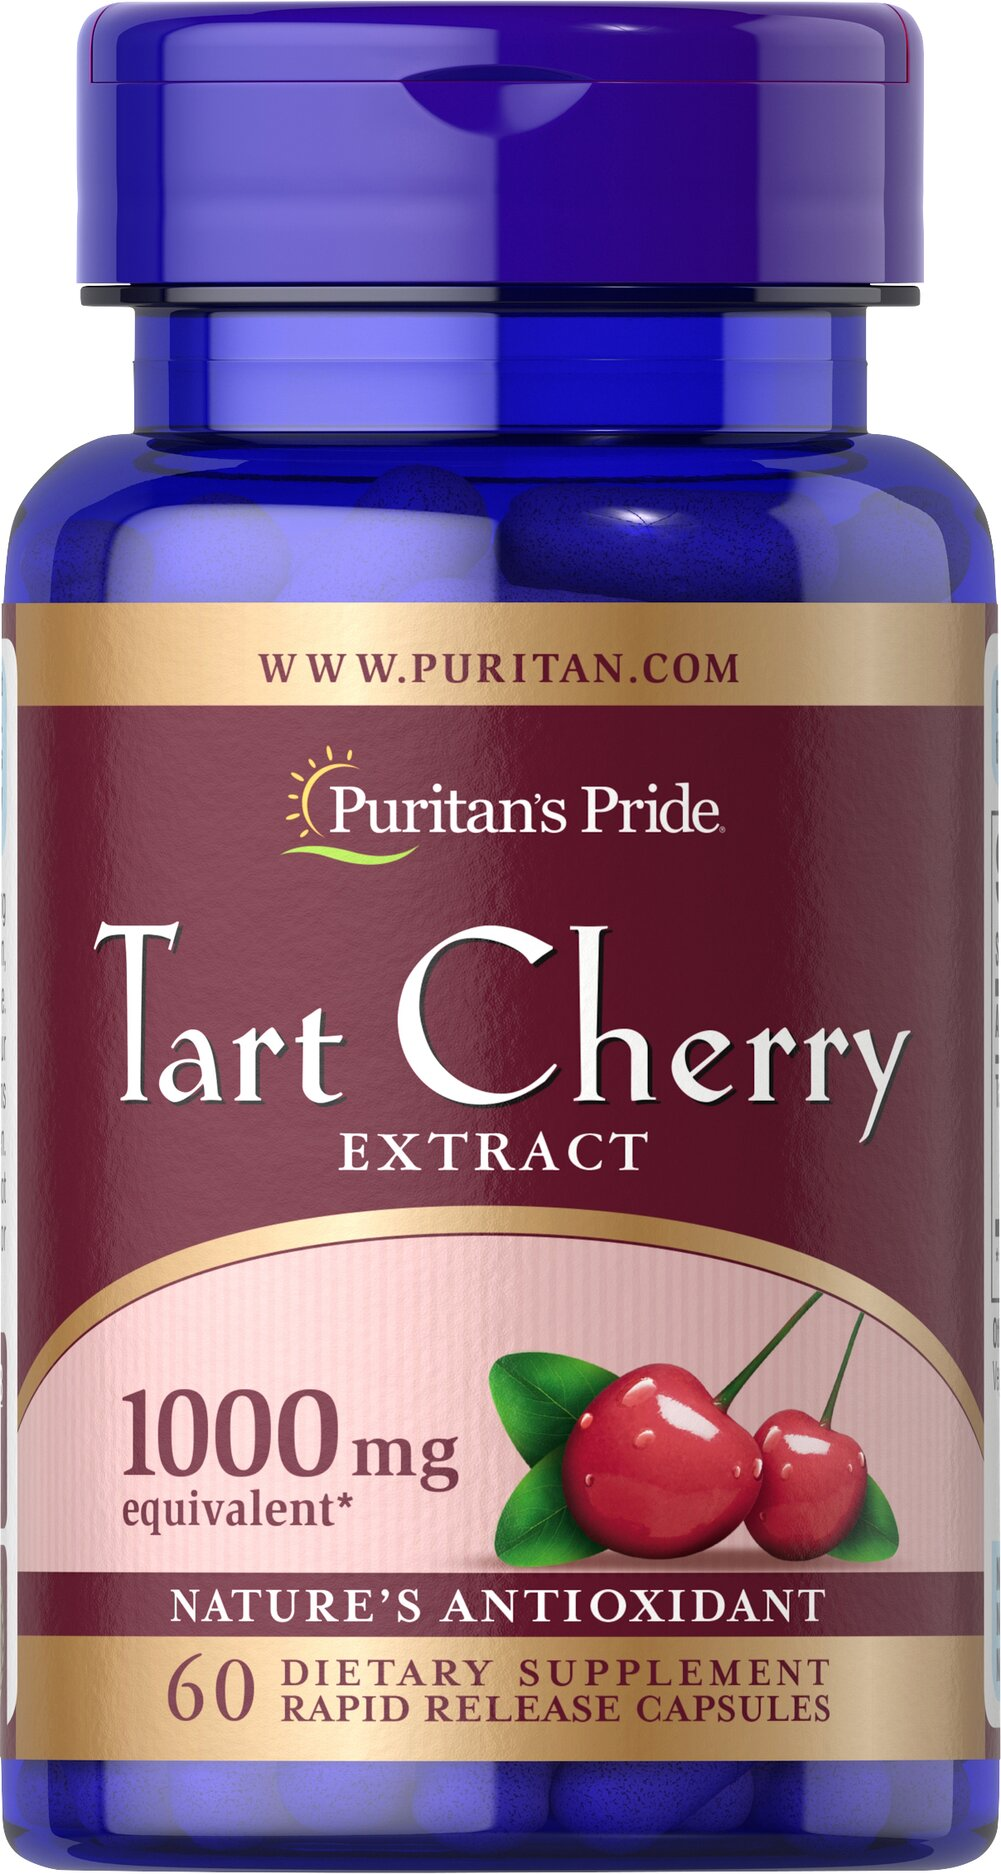 Tart Cherry Extract 1000 mg <p>Cherries are known for their natural content of antioxidants and other beneficial components. Now you can easily obtain the benefits of Tart Cherry in our convenient Tart Cherry capsules. Each serving contains a 4:1 extract of Tart Cherry to help retain the most important constituents.</p> 60 Capsules 1000 mg $16.99